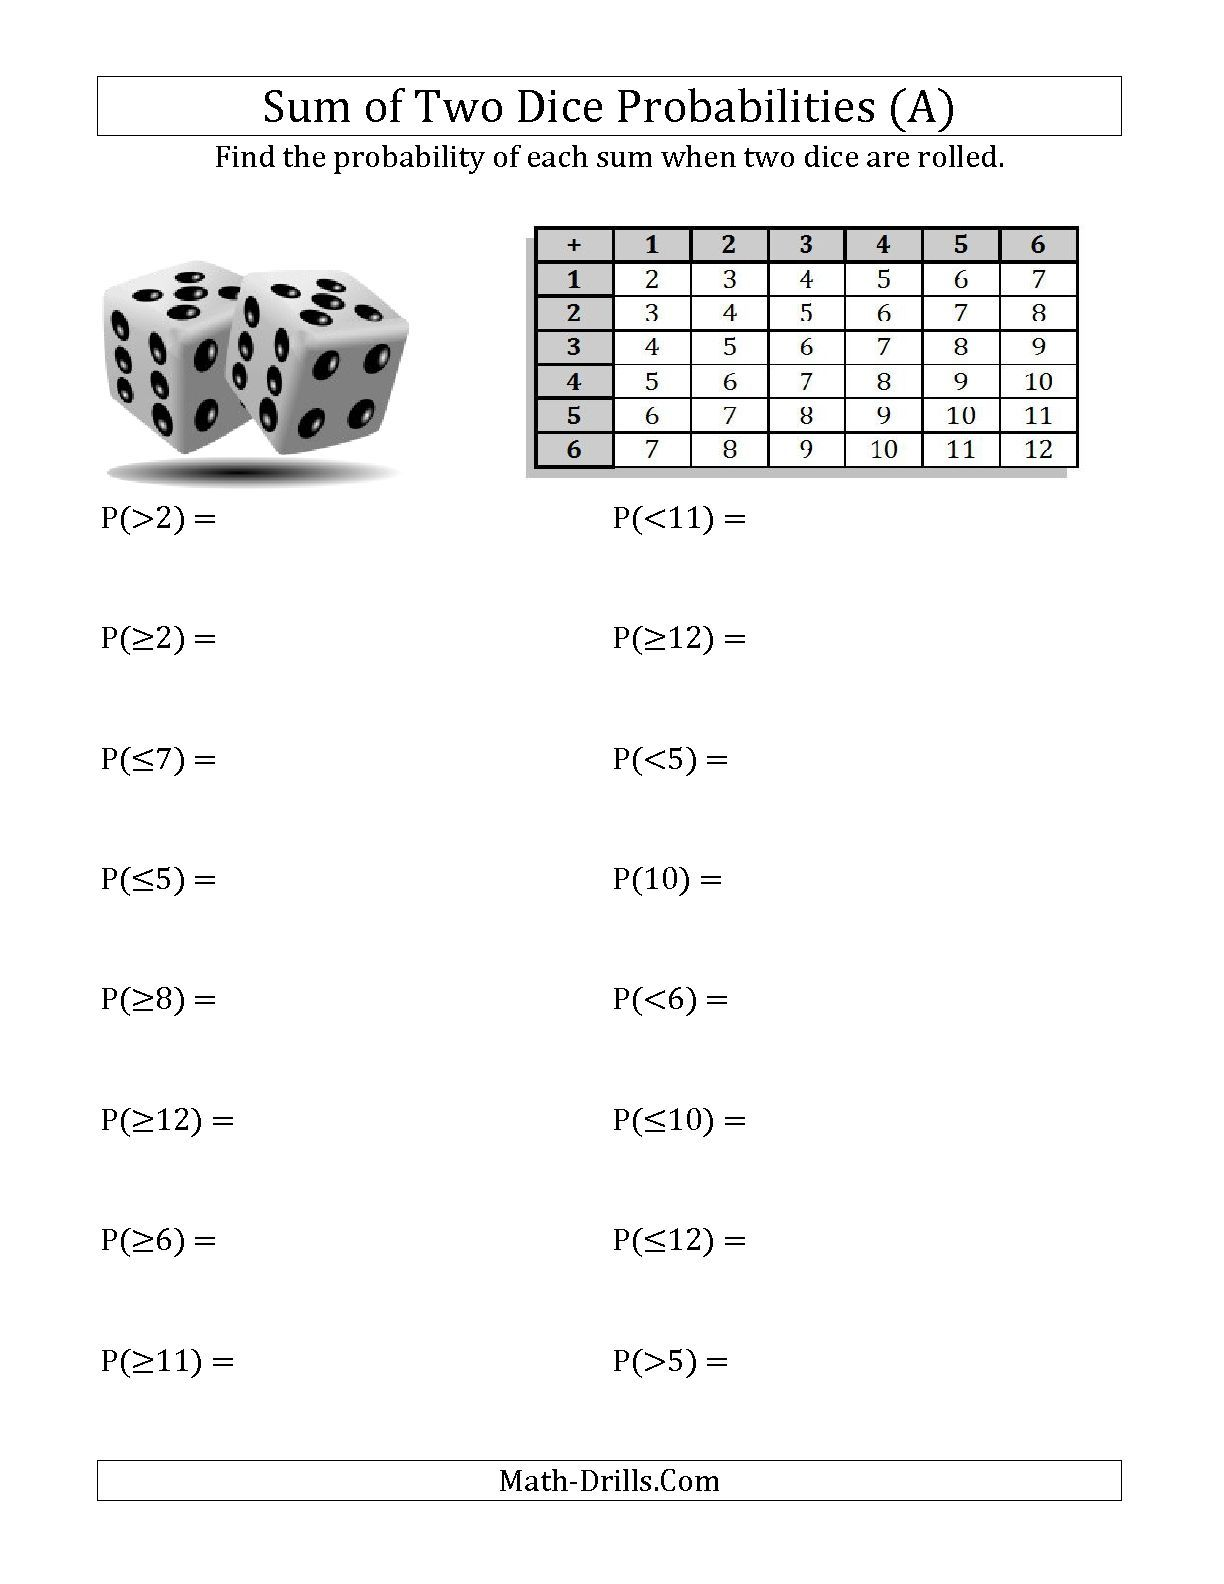 Sum Of Two Dice Probabilities With Table A